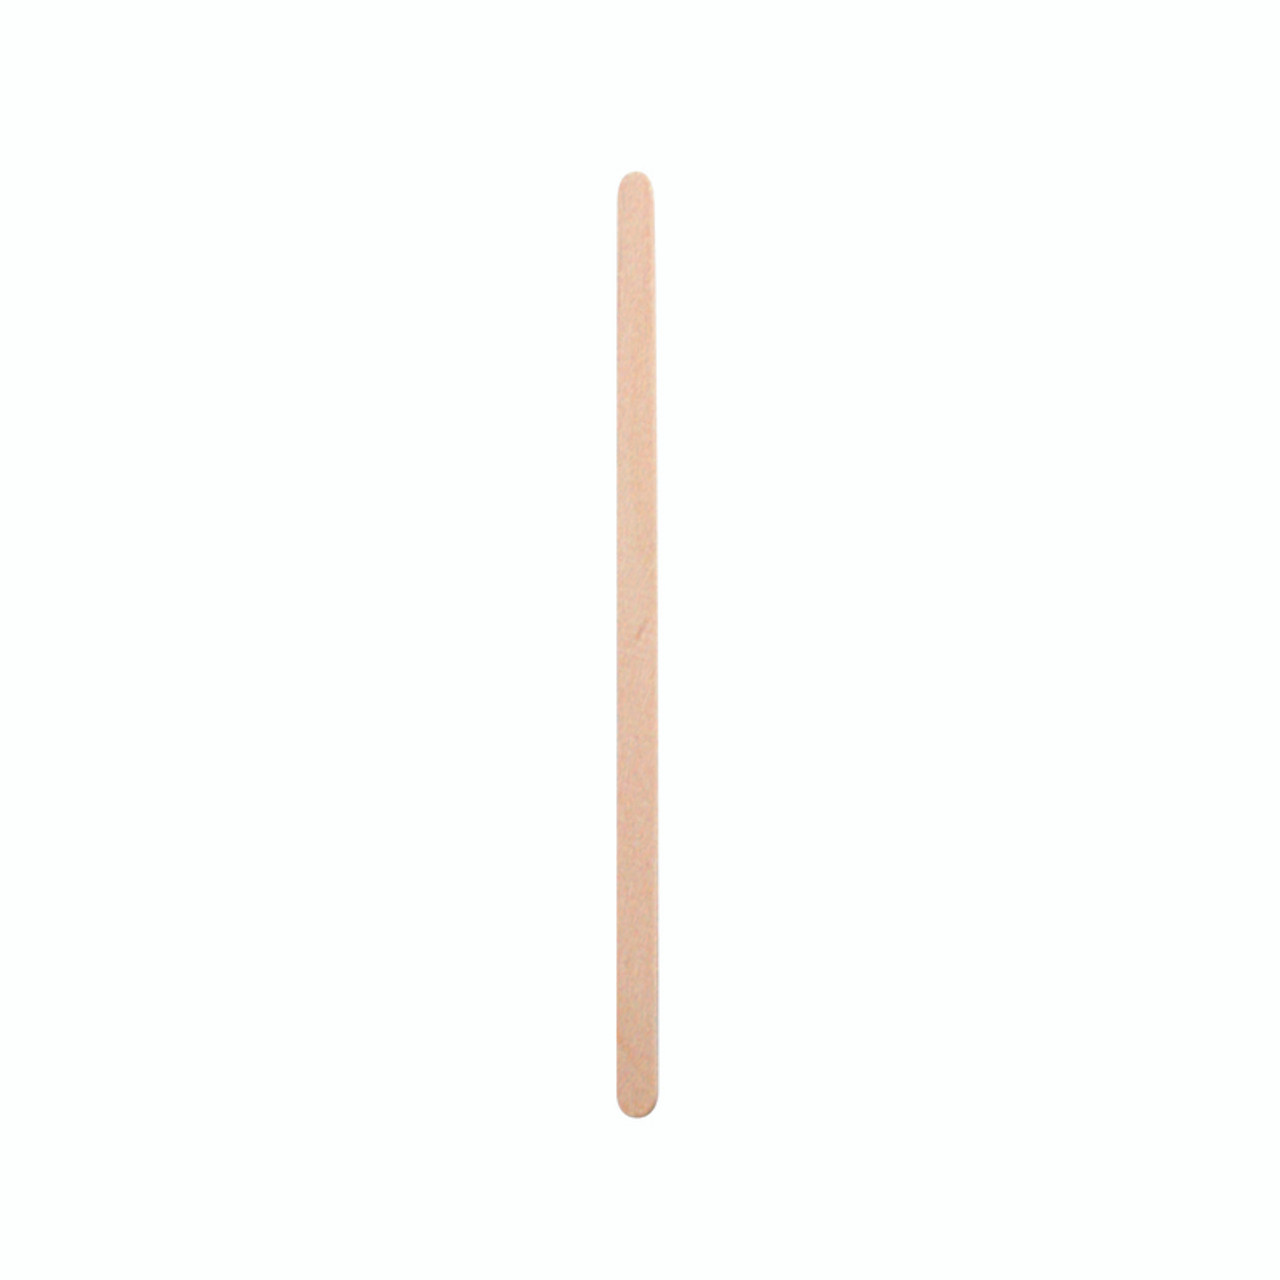 Wooden Coffee Stirrers - L:5.51in